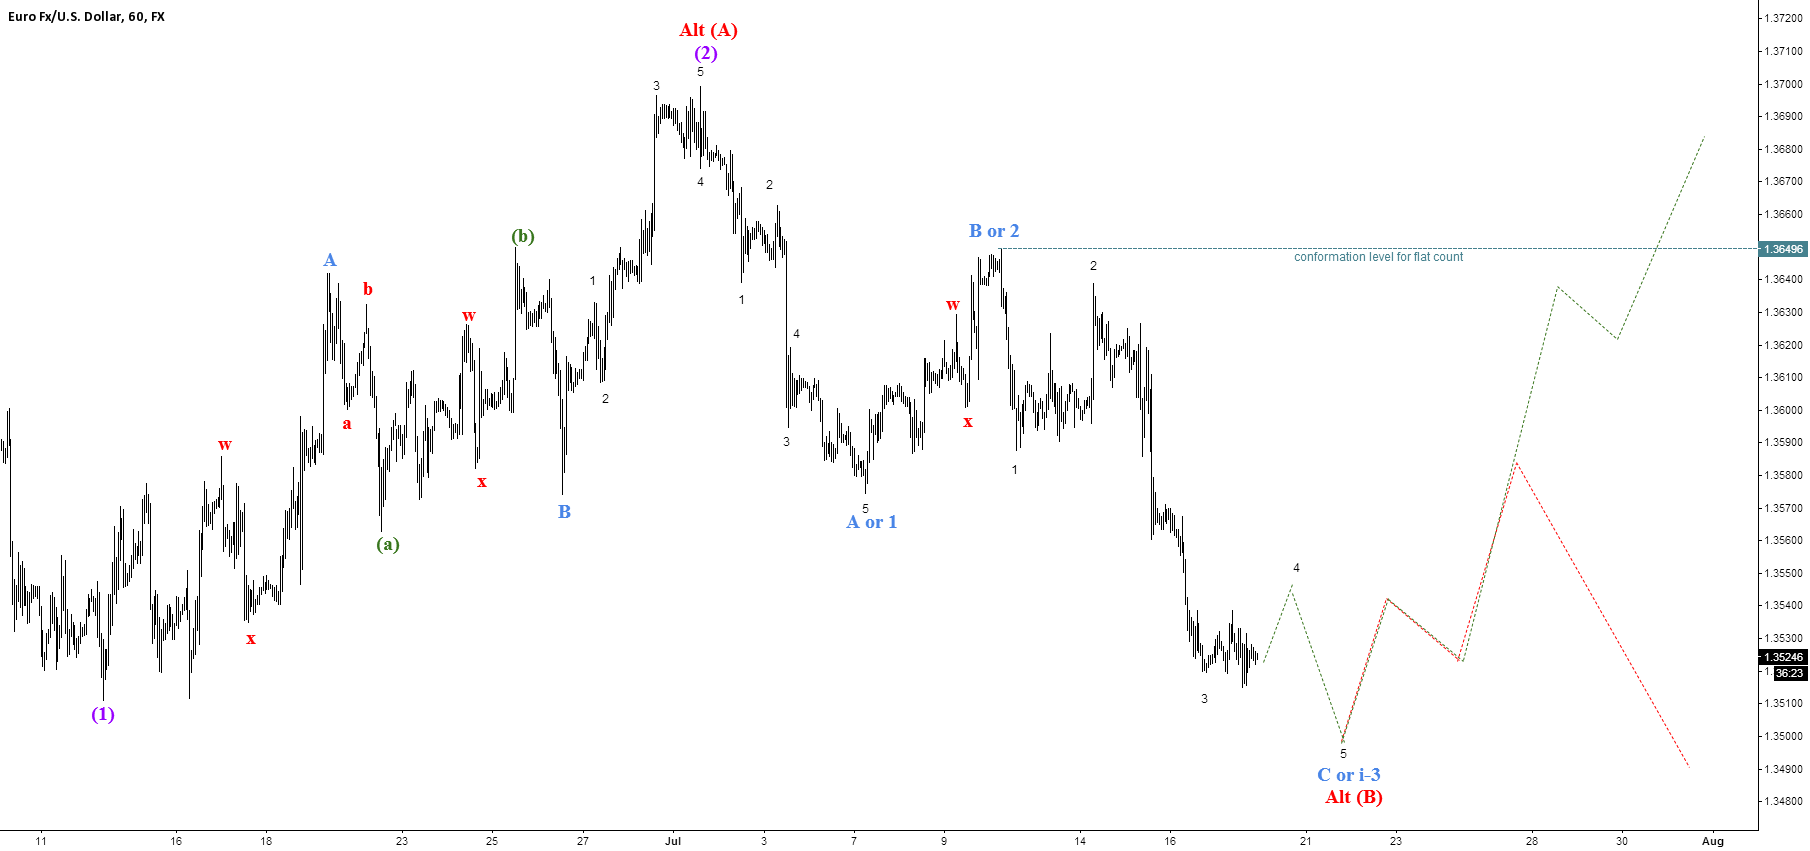 Wave (B) of a flat or first leg of a third wave?